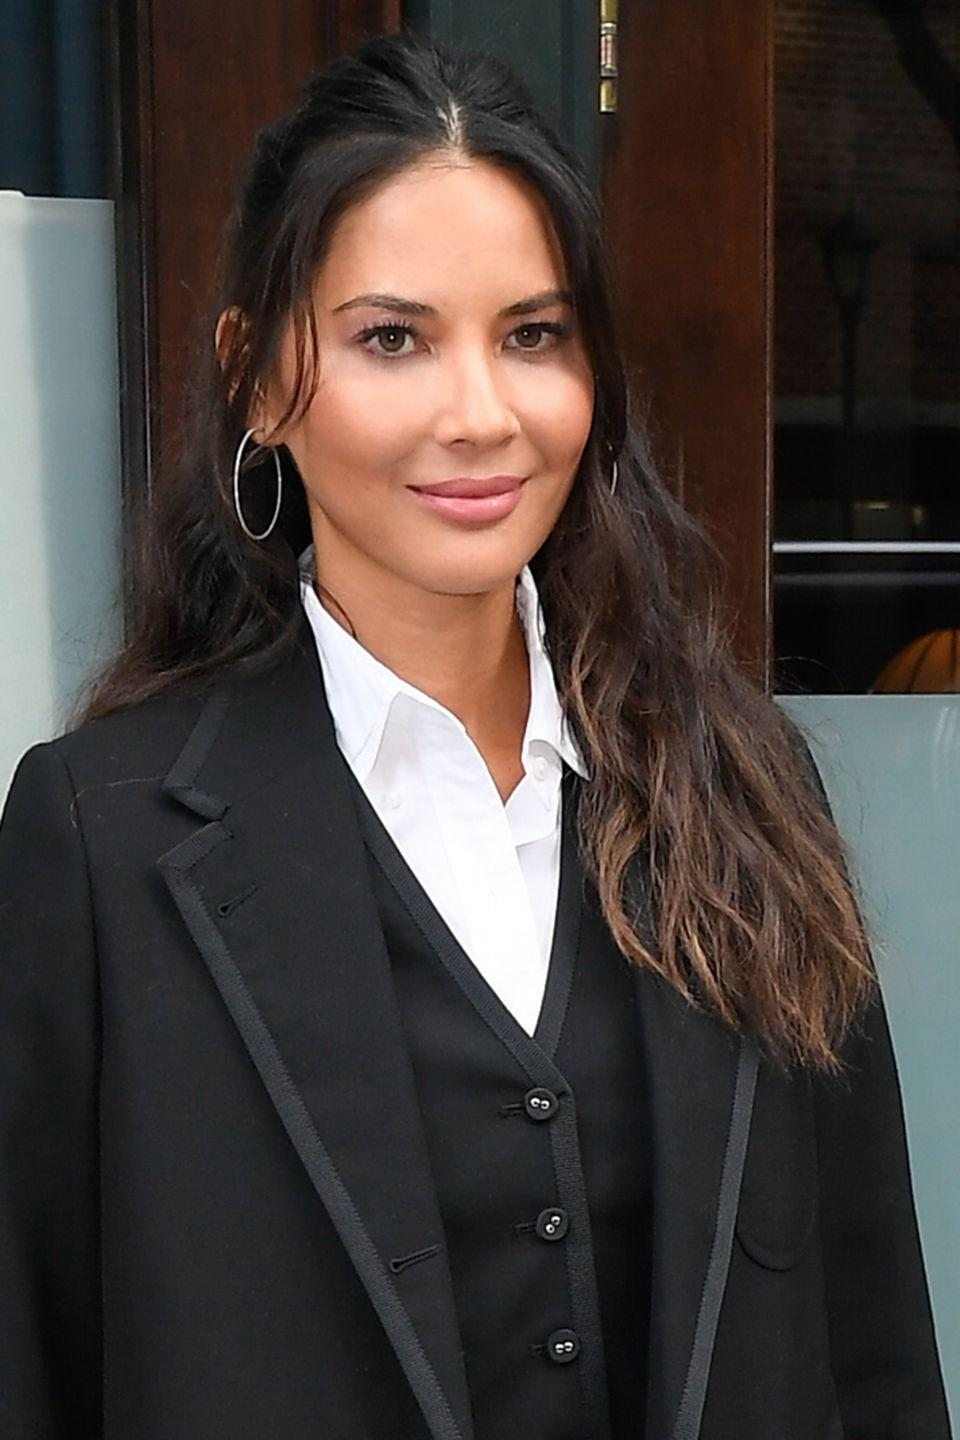 <p>Elevate loose waves in a half-up, half-down style like Olivia Munn. It's even easier to do on unwashed hair. If you have layers, leave the shortest strands out to fall gently in front. </p>